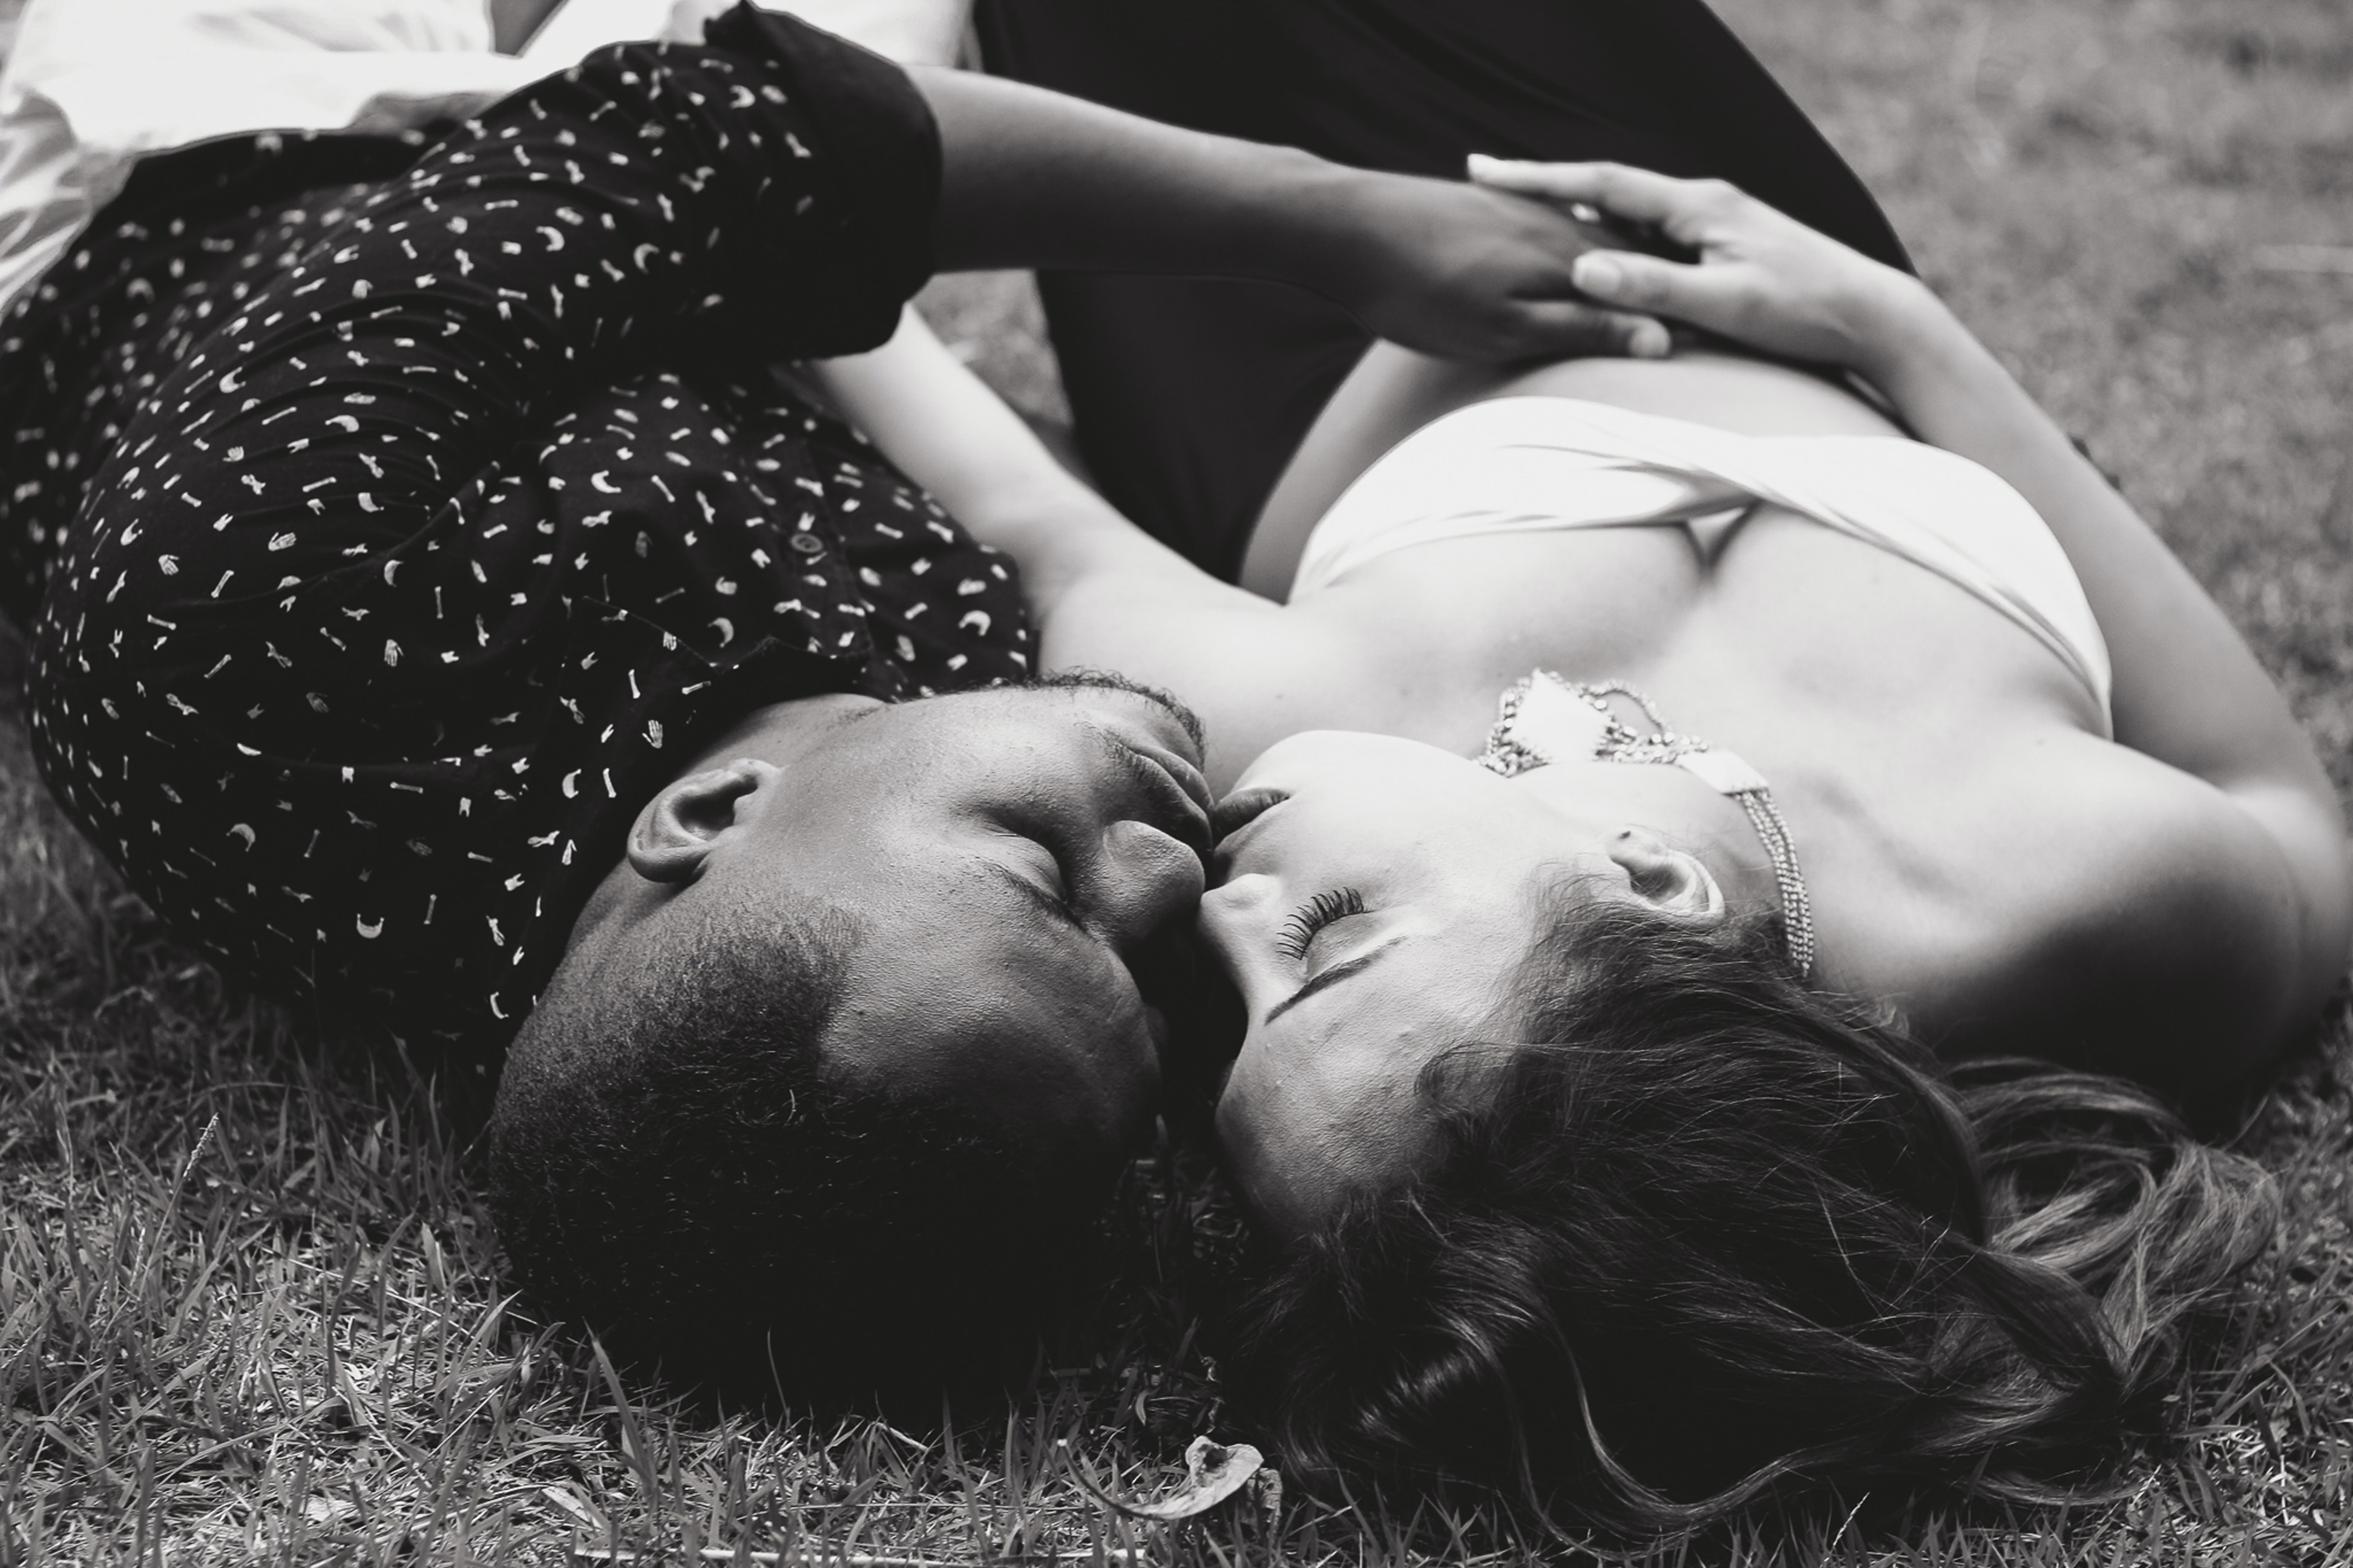 A man and a woman lying down on grass cuddle and kiss in black-and-white